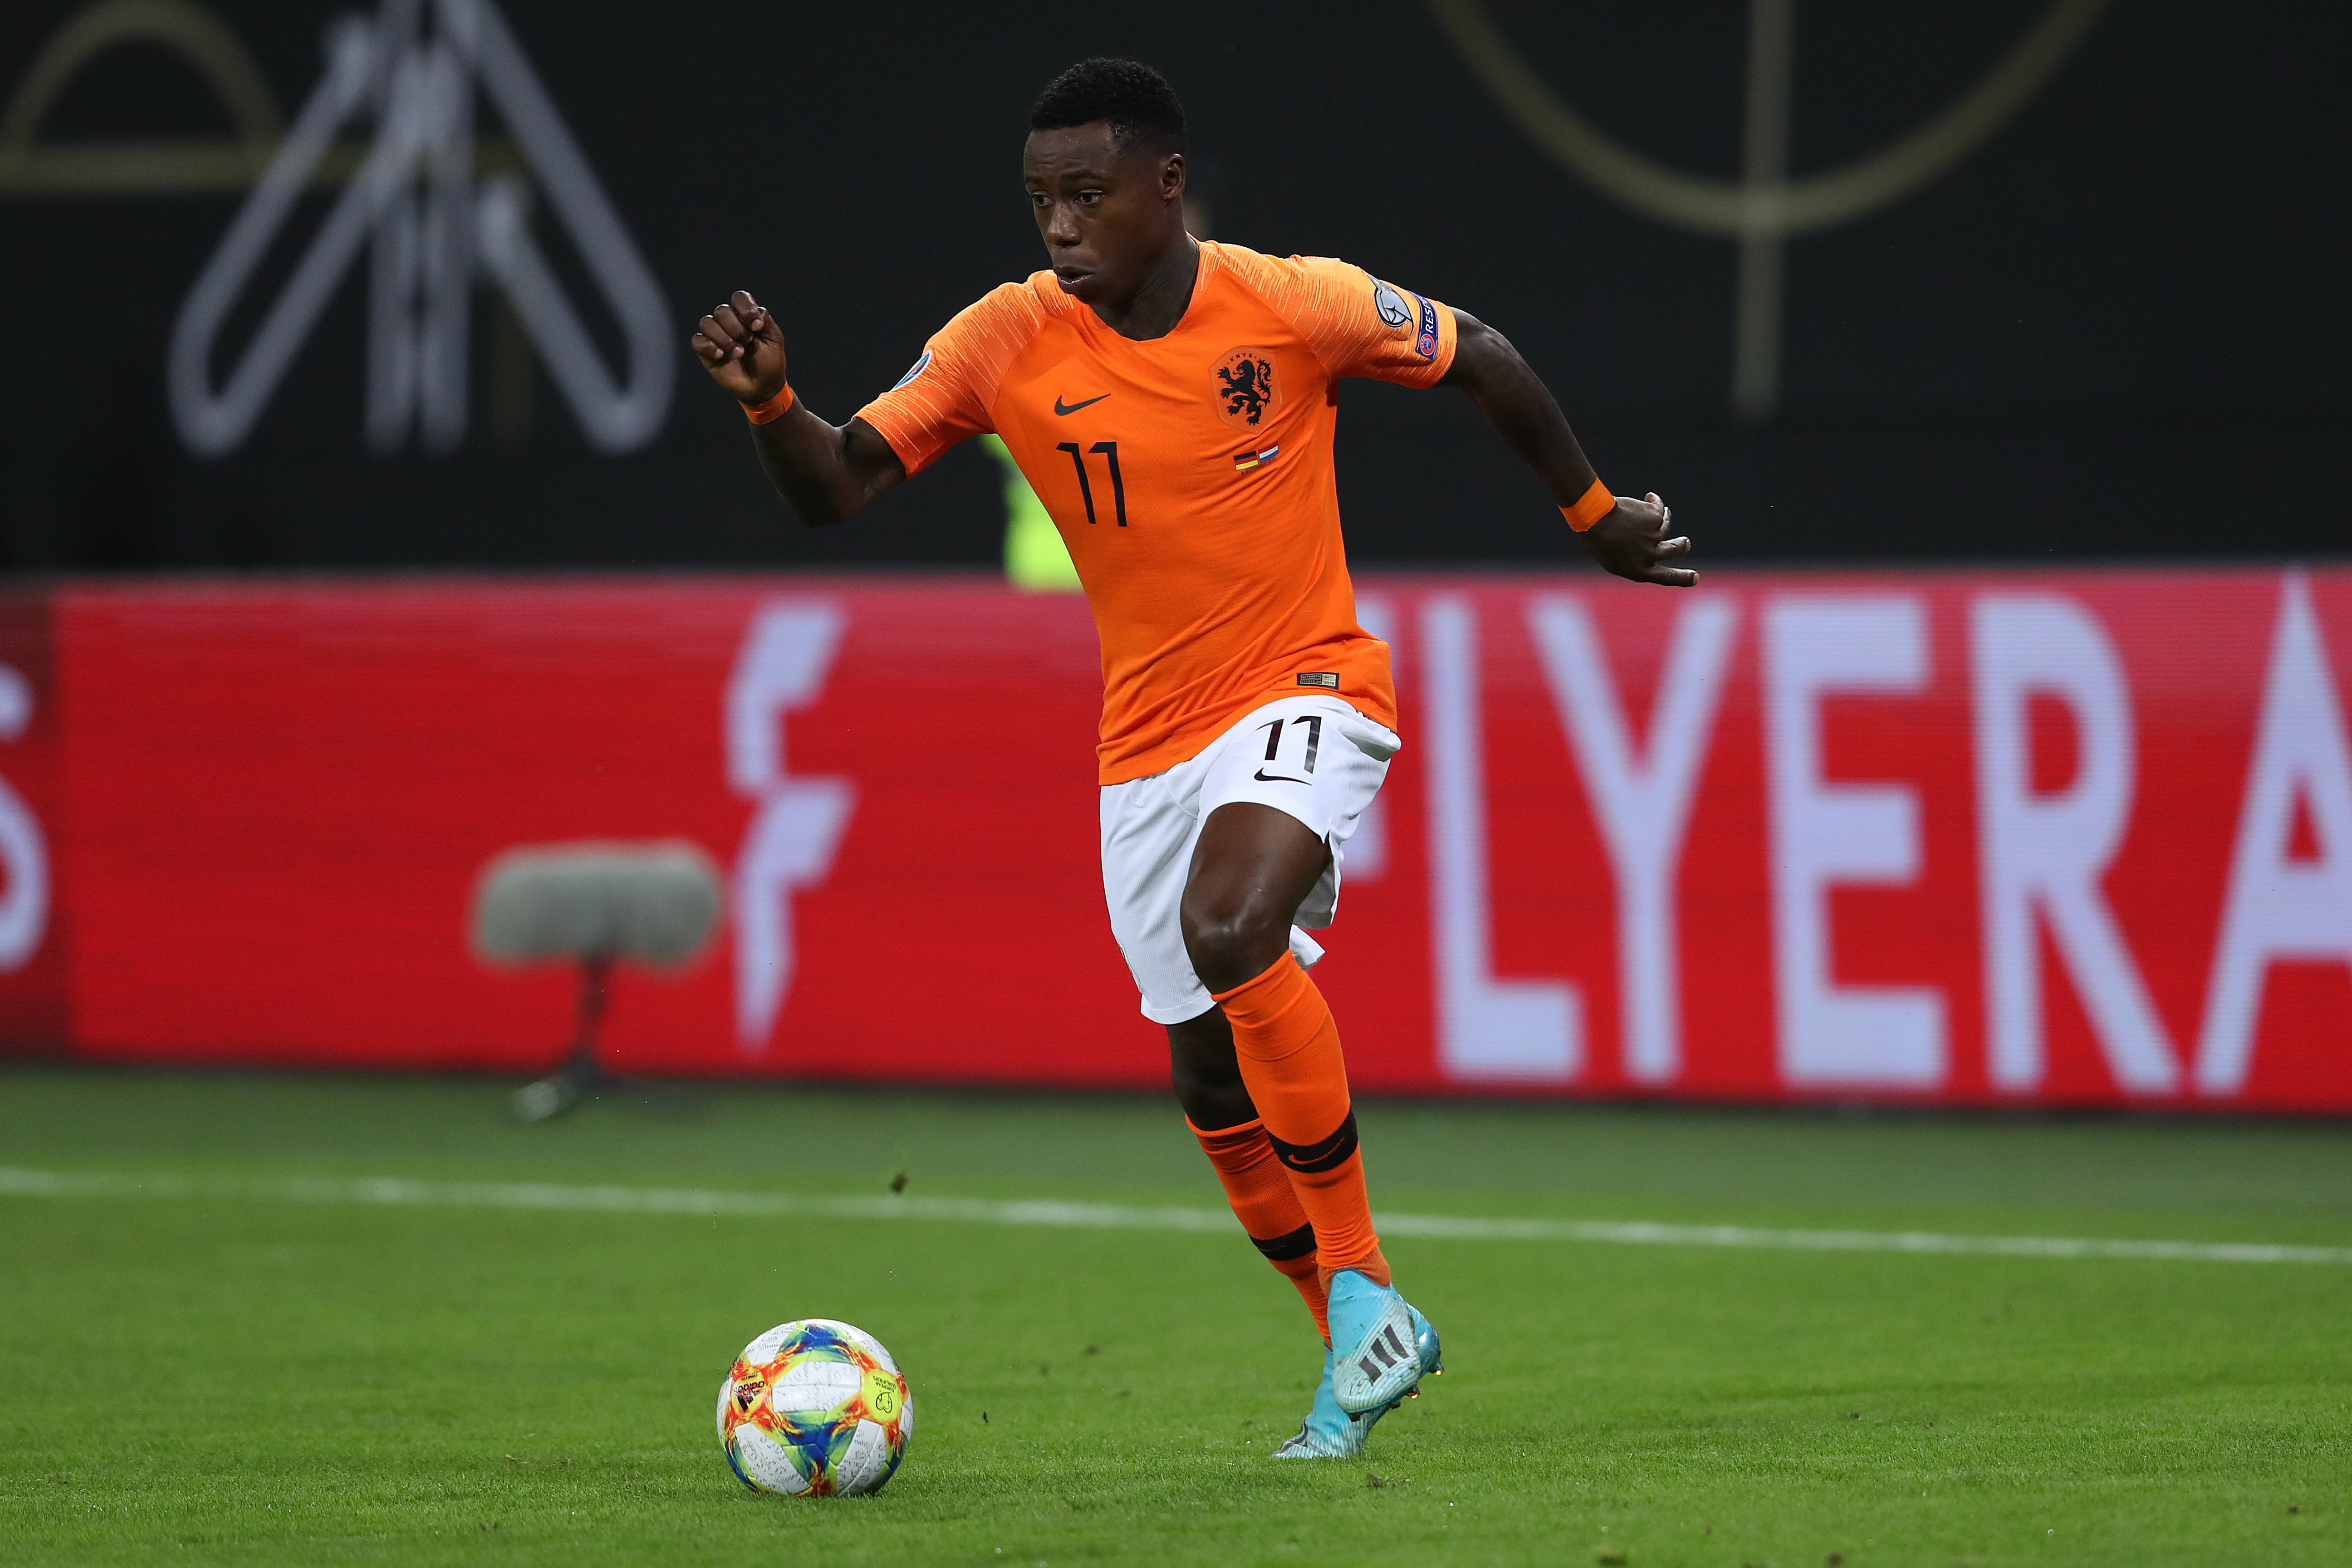 Quincy Promes on Arsenal's radar (Photo by Alexander Hassenstein/Bongarts/Getty Images)